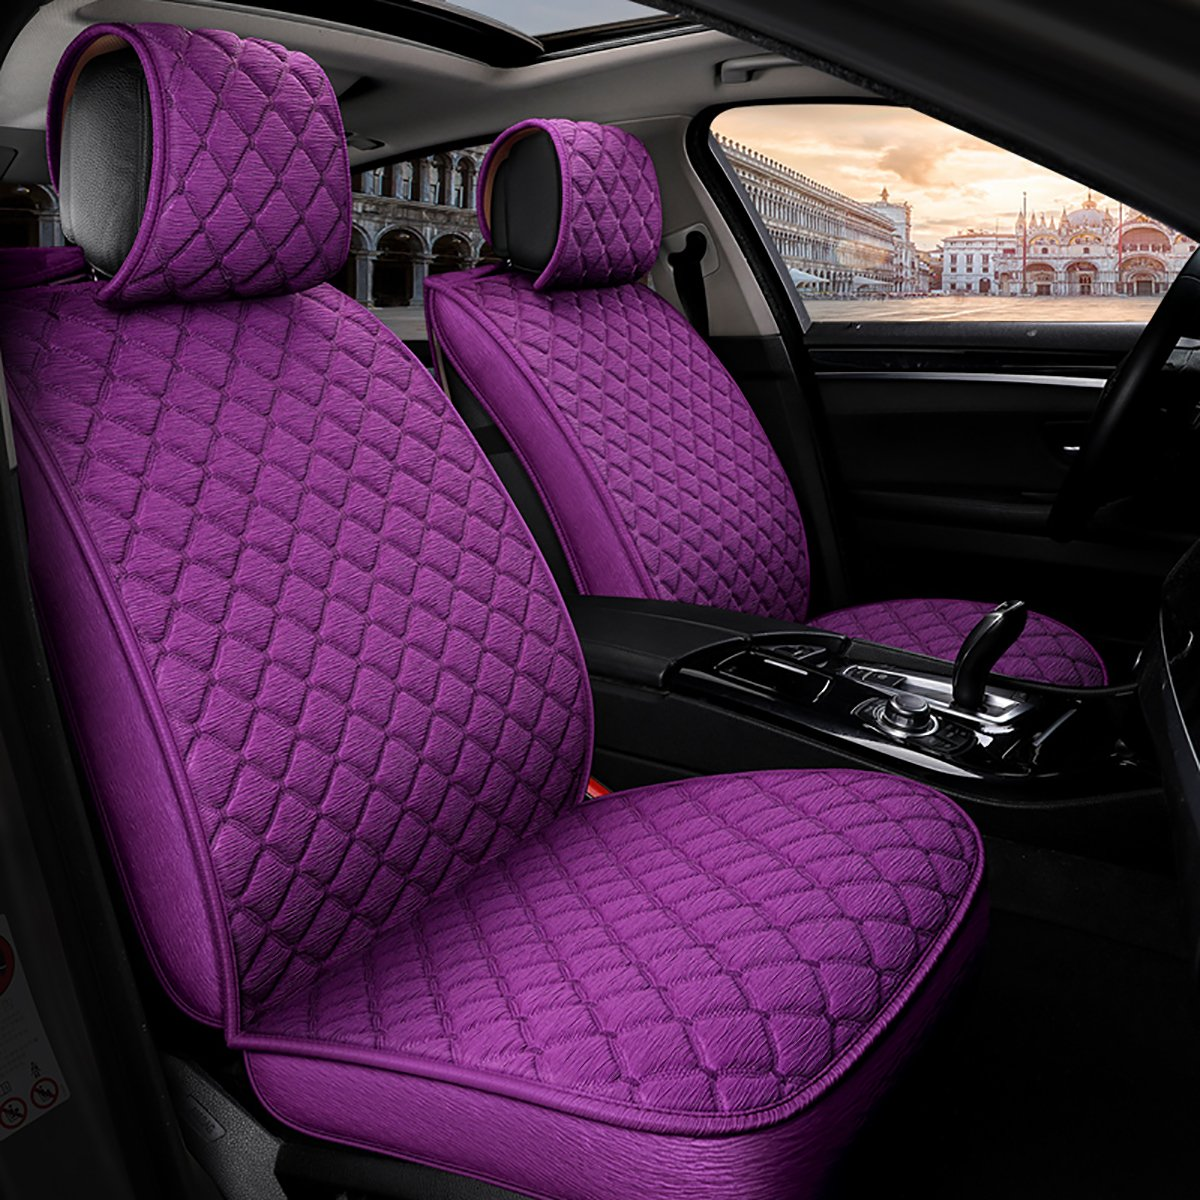 INCH EMPIRE Anti Slip Car Seat Cover Full Set Cloth Universal Fit Front and Back Breathable Dirty Proof Fabric Cushion-Adjustable Bench for 95% Types of 5 Seats Cars(Purple with Stich Grid)